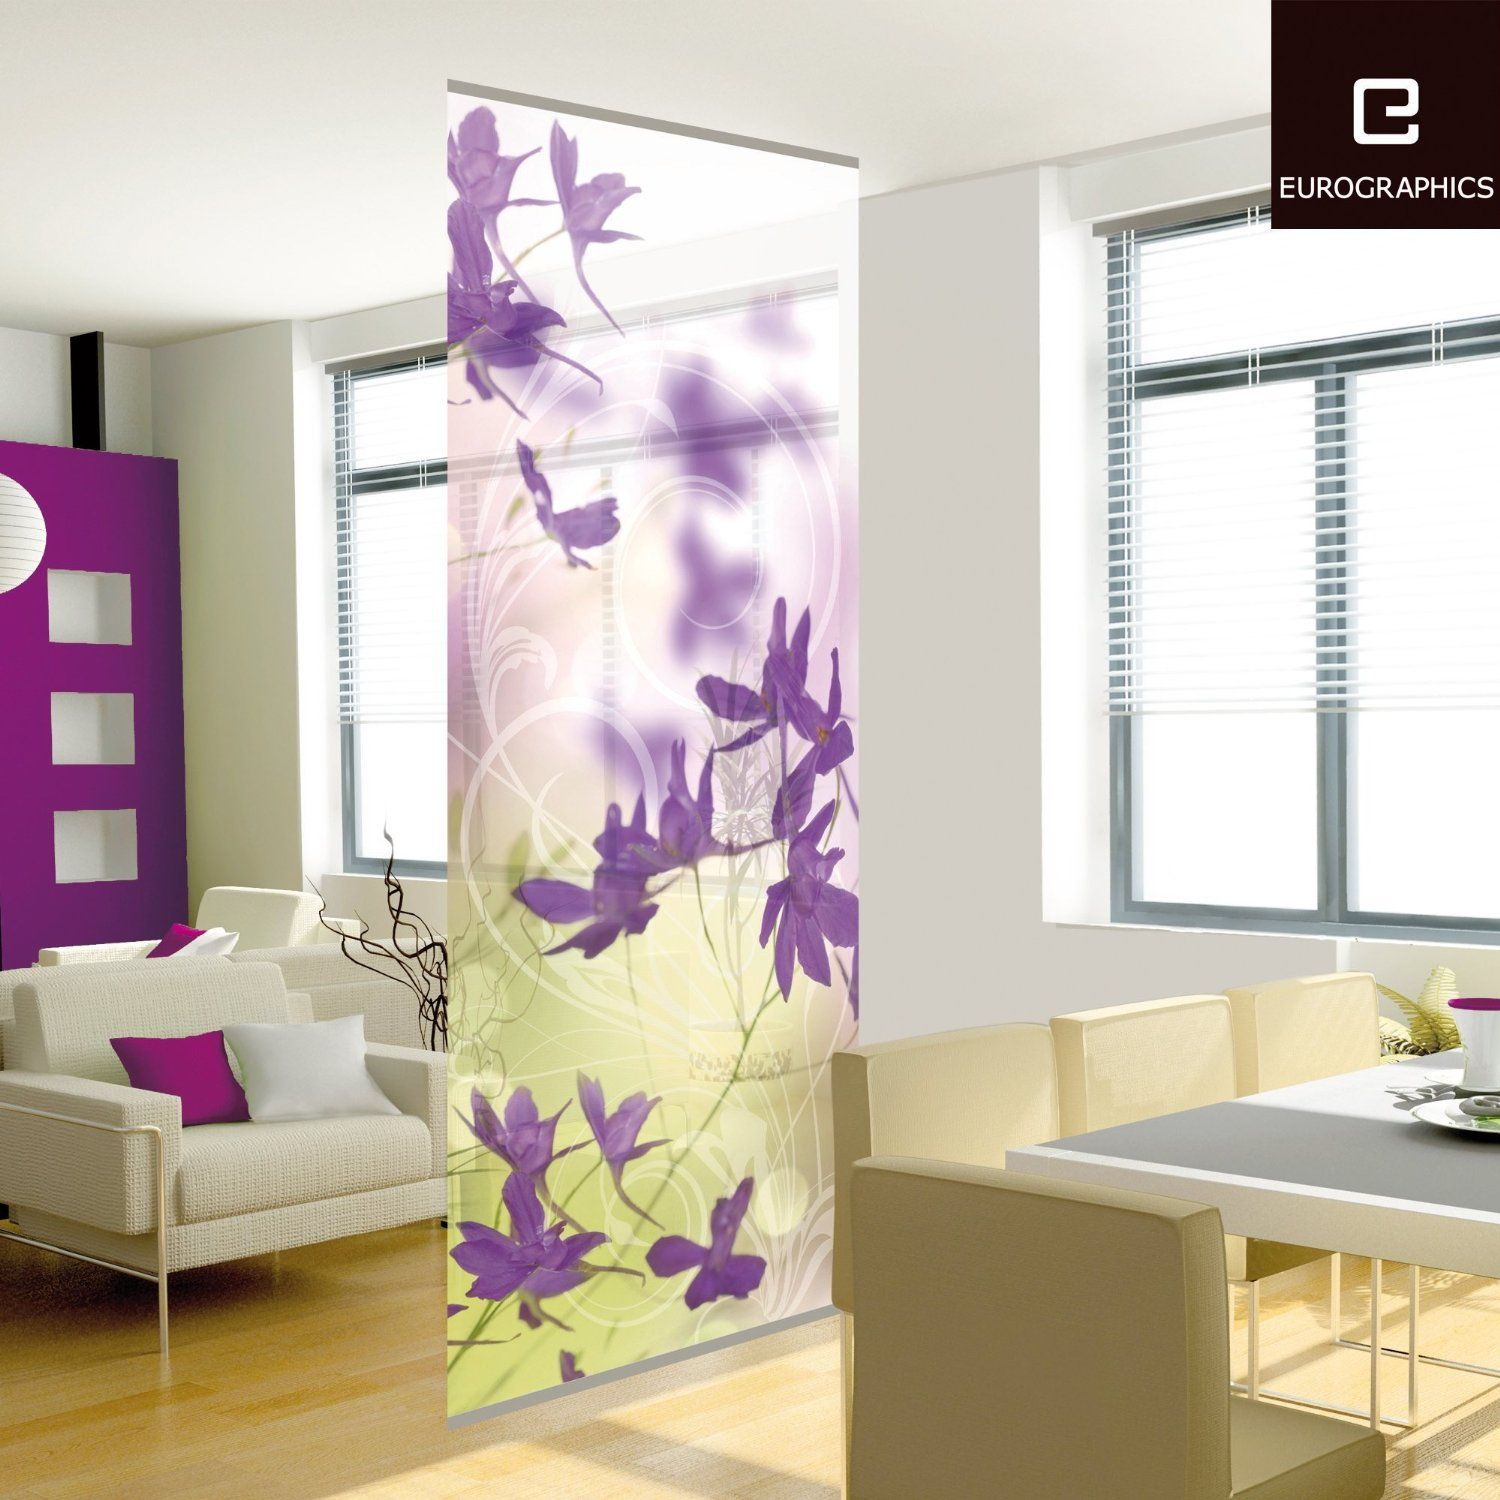 Beautifully Purple Flower Patterns Decorative Wall Dividers For Living Room Modern Style With Cool Sofa And